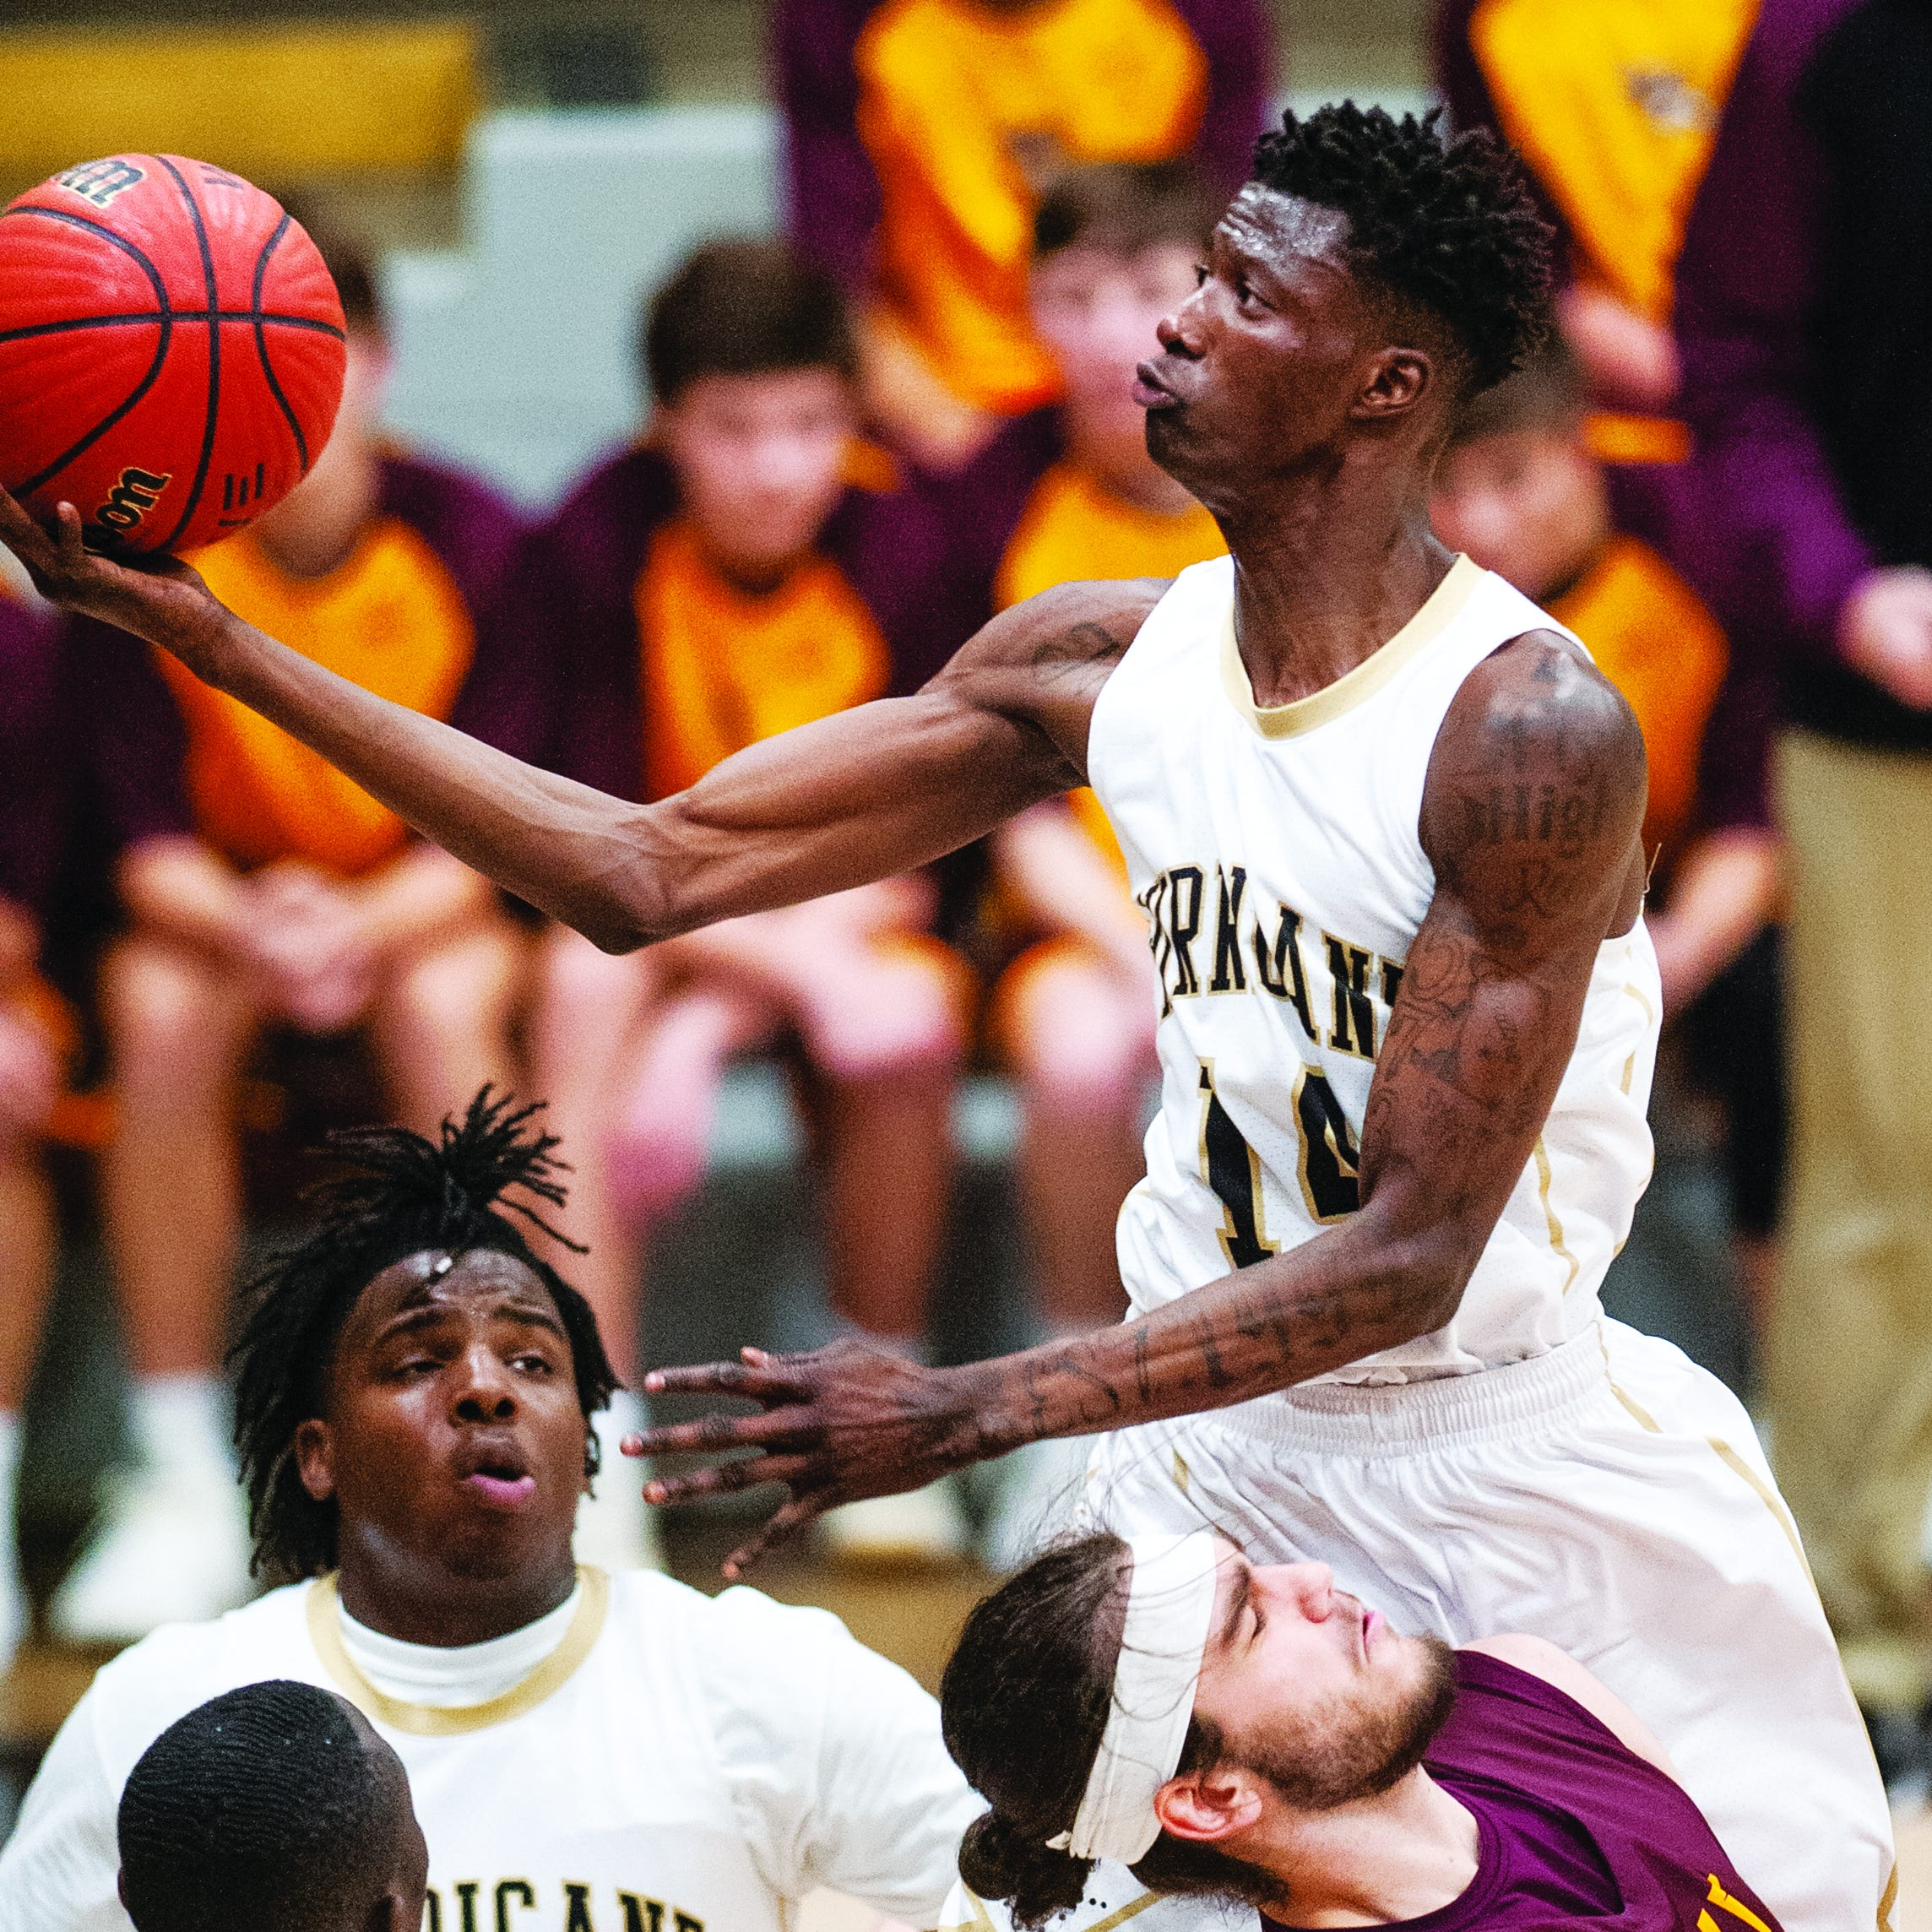 How a hospital phone call changed everything for Iowa State signee Marcedus Leech